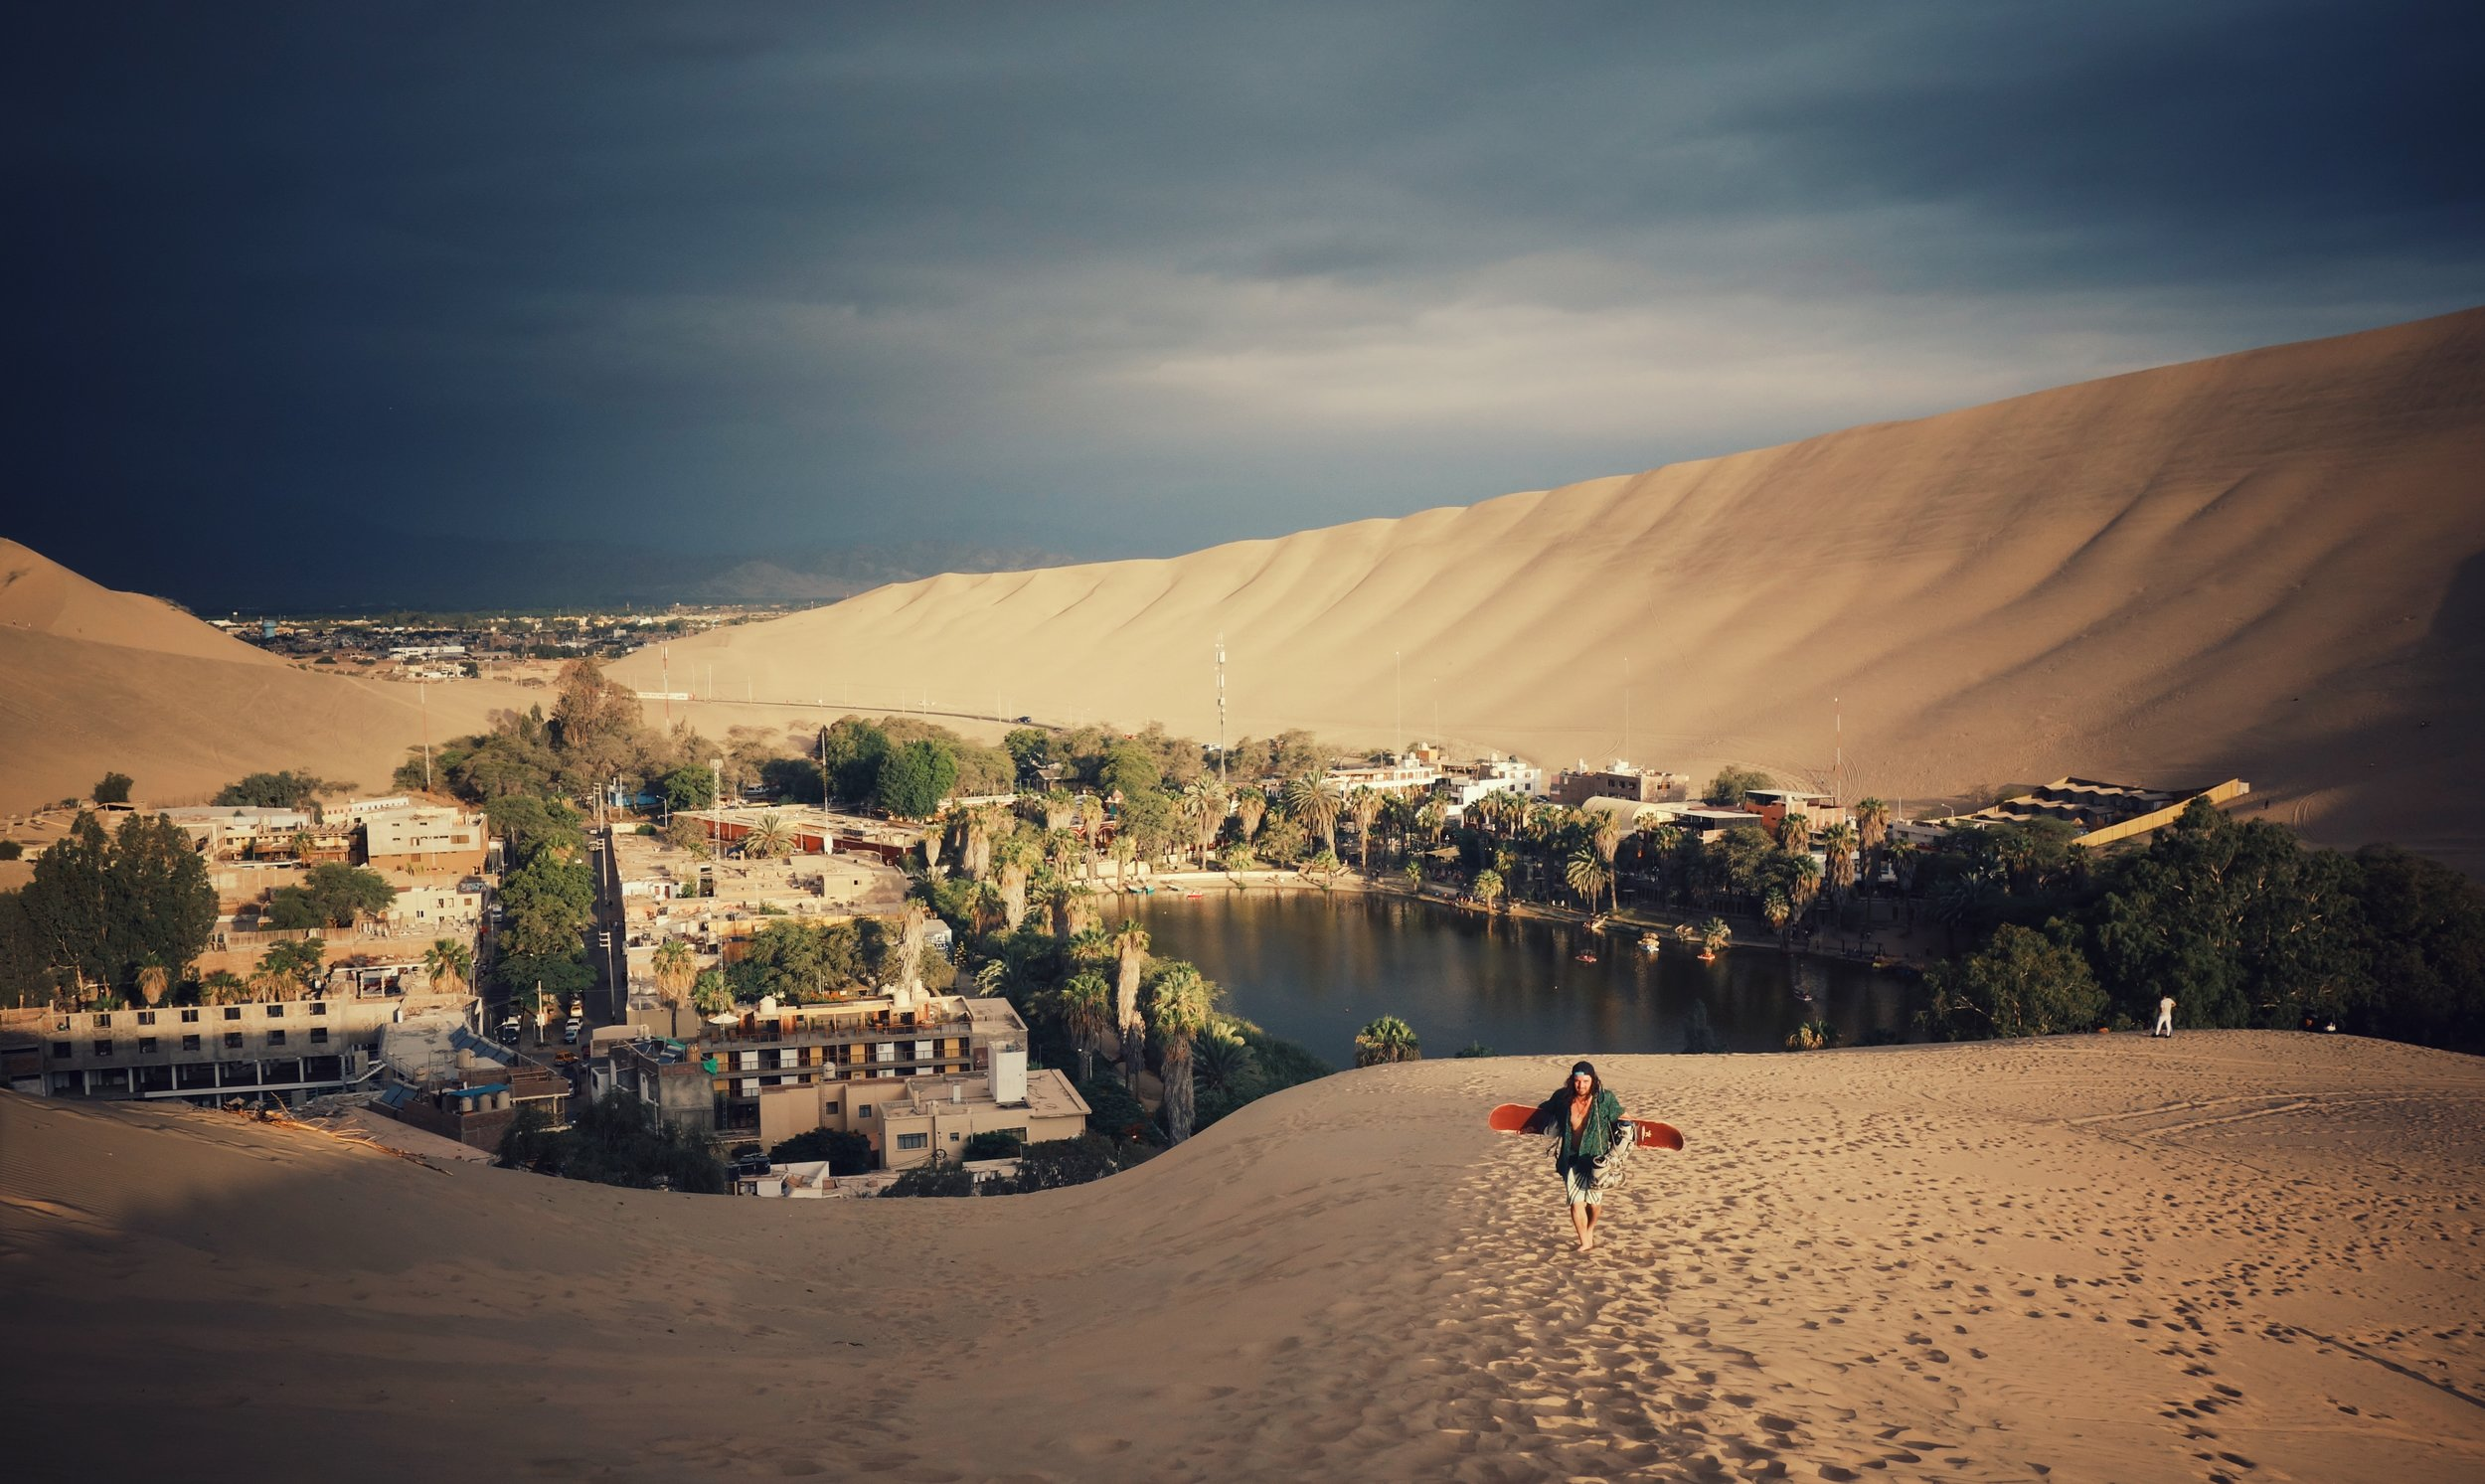 Looking down on Huacachina. The EcoCamp is visible on the far right edge.